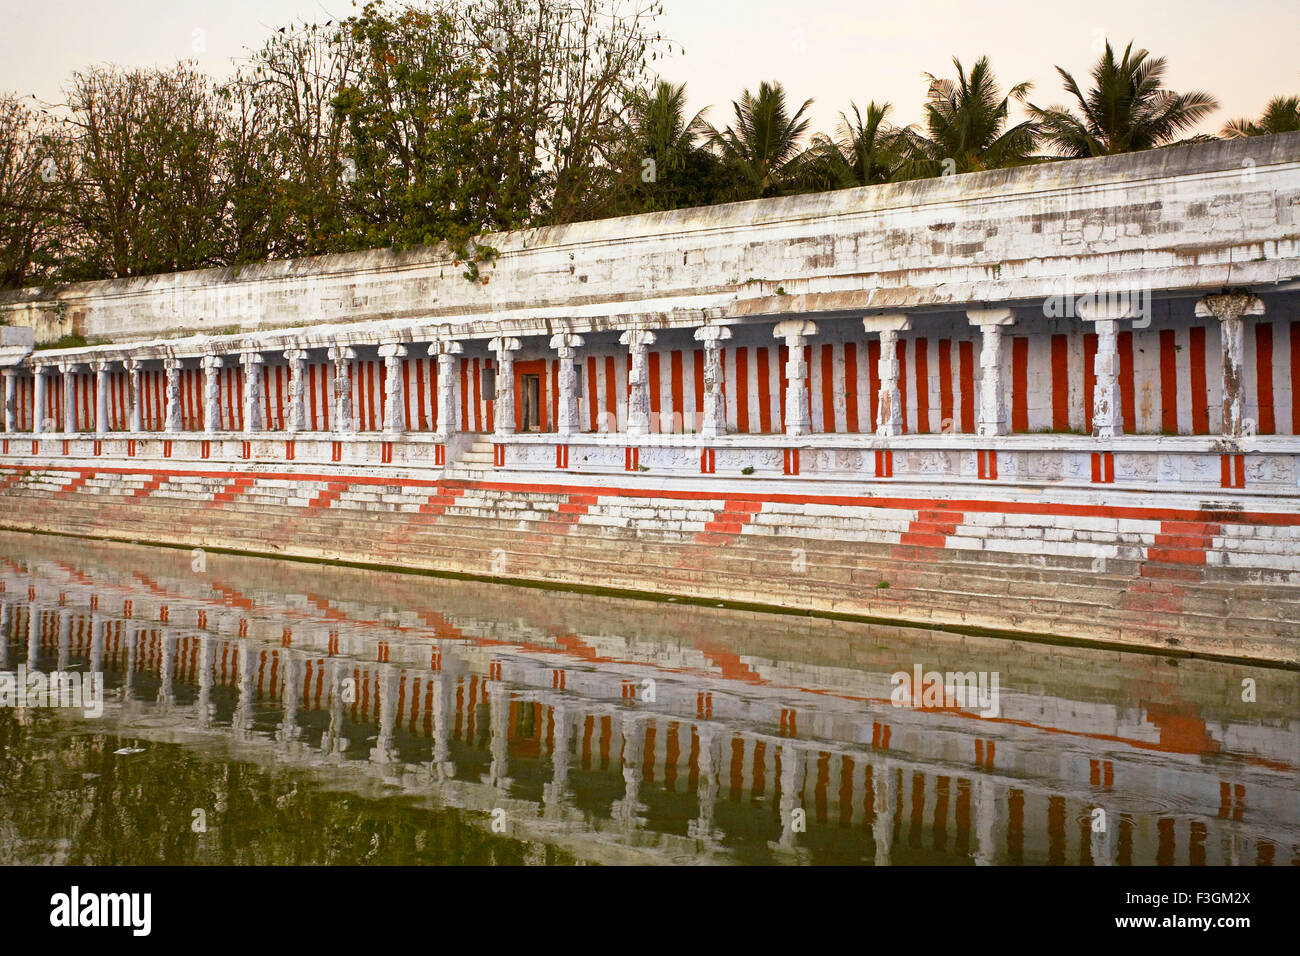 Red and white stripes on the water tank of Ekambareswarar temple ; Shiva temple built by the Pallava kings ; Kanchipuram - Stock Image